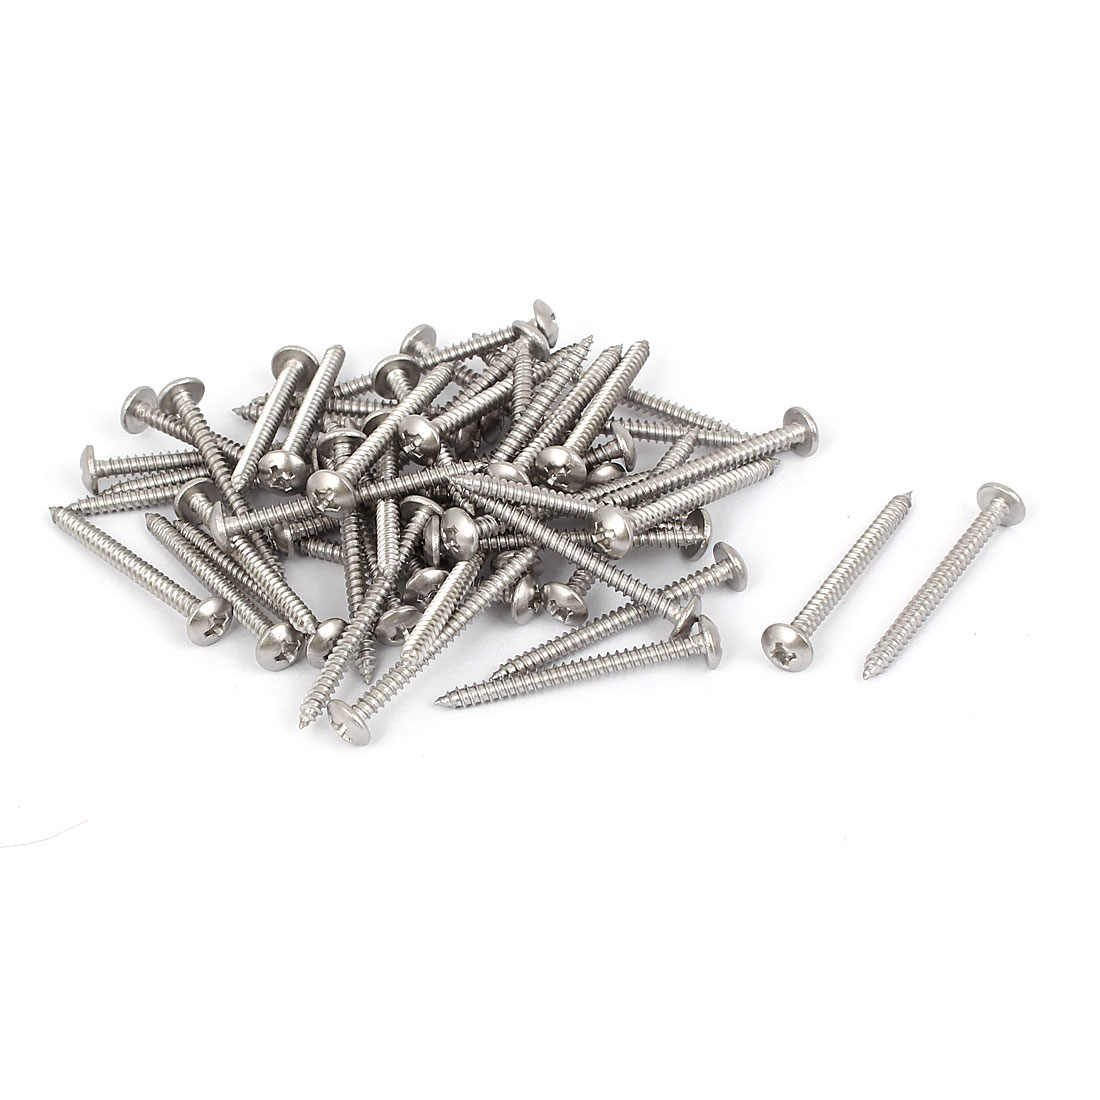 #4 M2.9x32mm Stainless Steel Phillips Truss Head Self Tapping Screws 50pcs